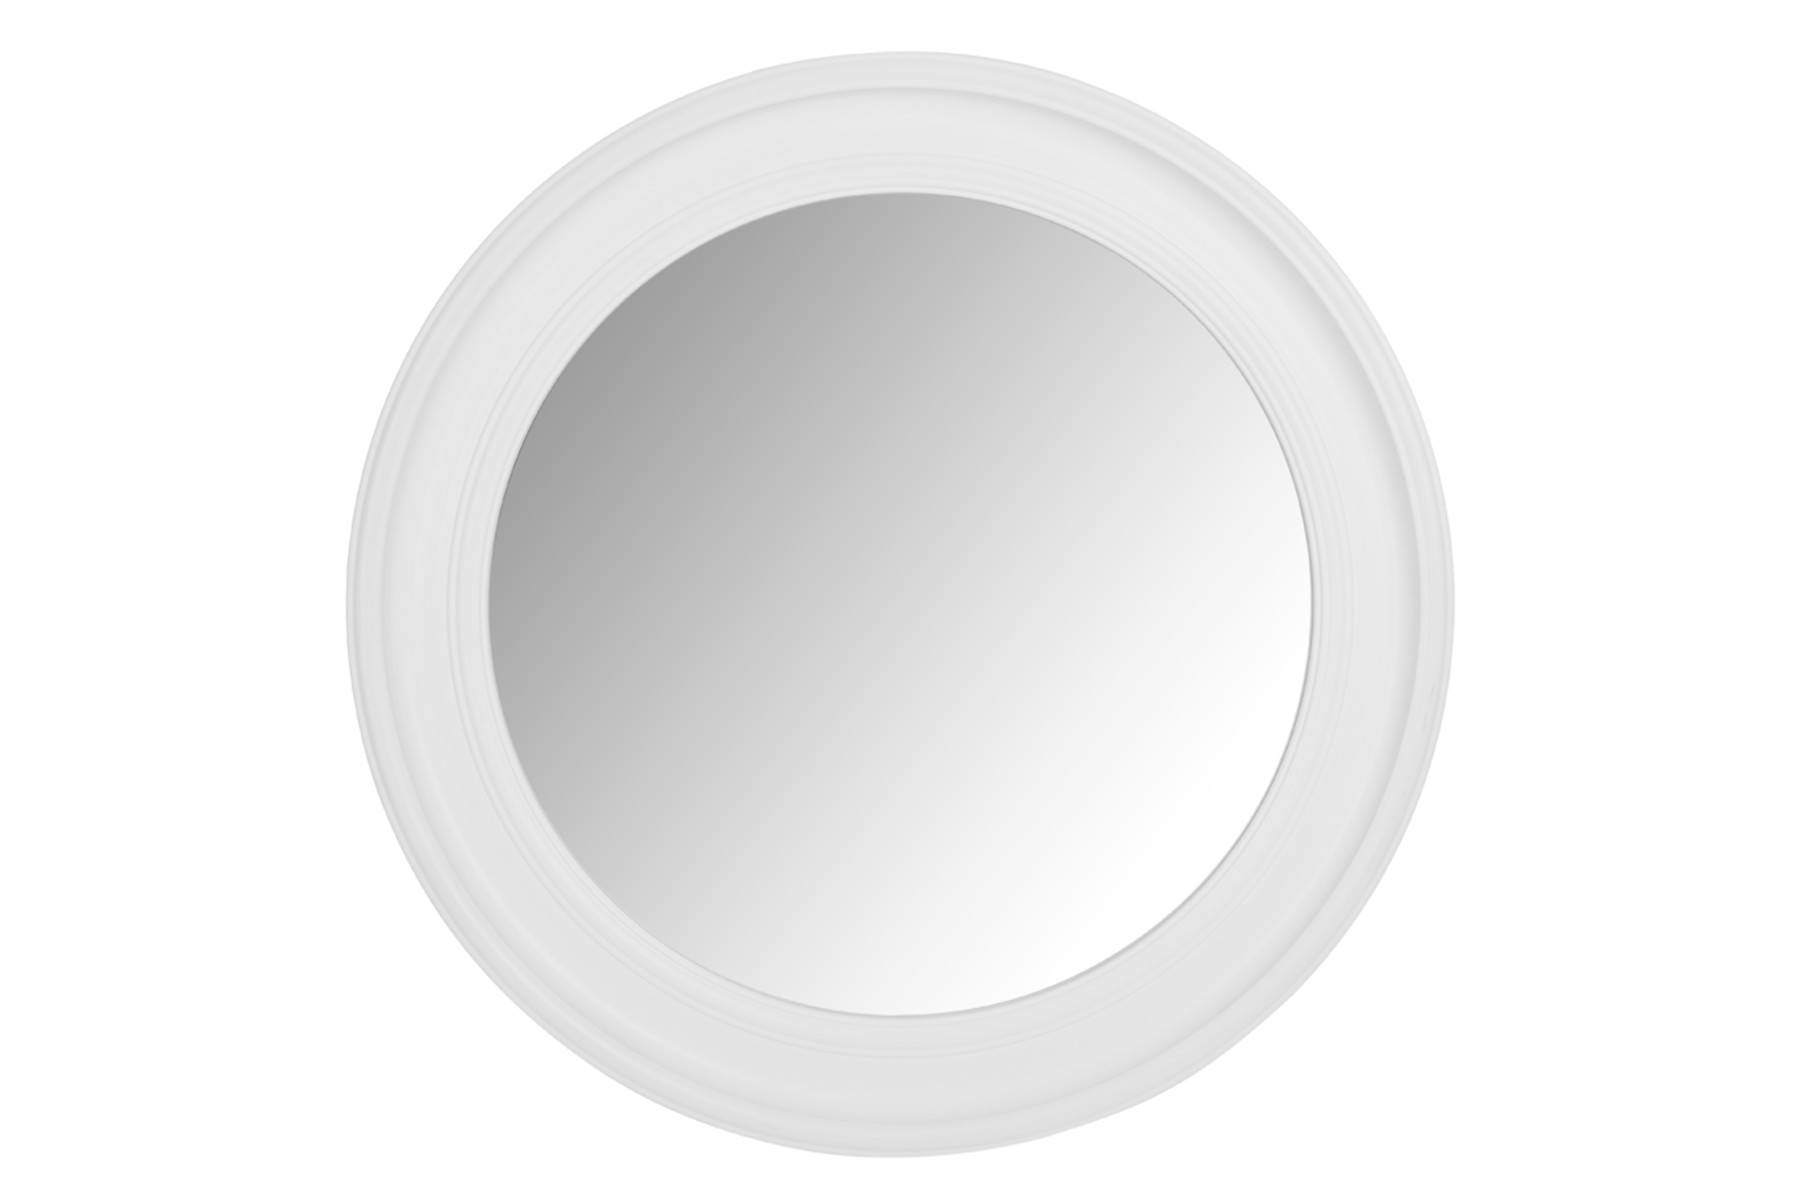 Made To Order Mirrors | Made To Order Mirror | Laura Ashley Inside Oval White Mirrors (View 9 of 15)